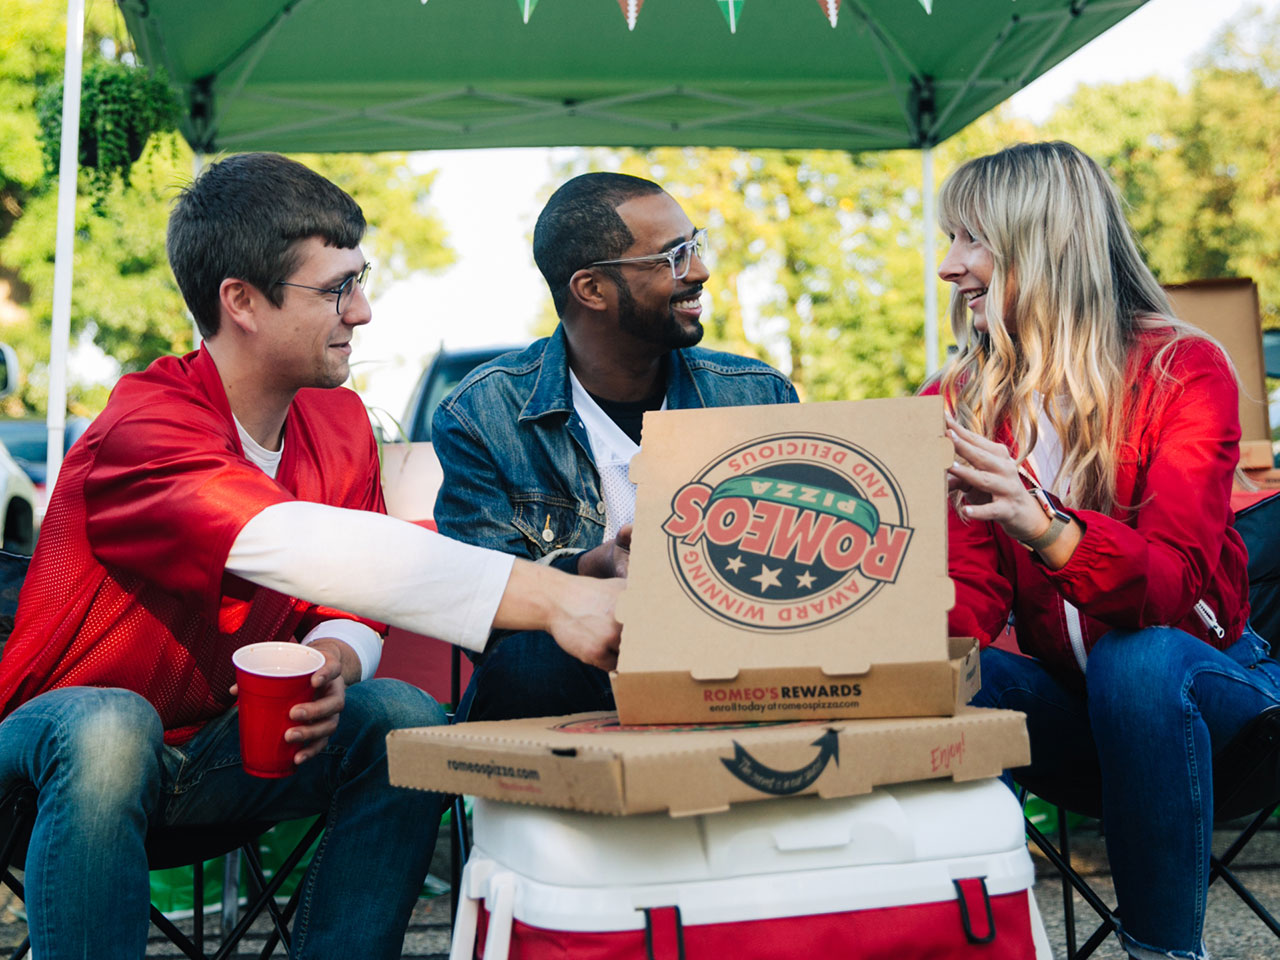 Romeo's Pizza tailgate photoshoot 3